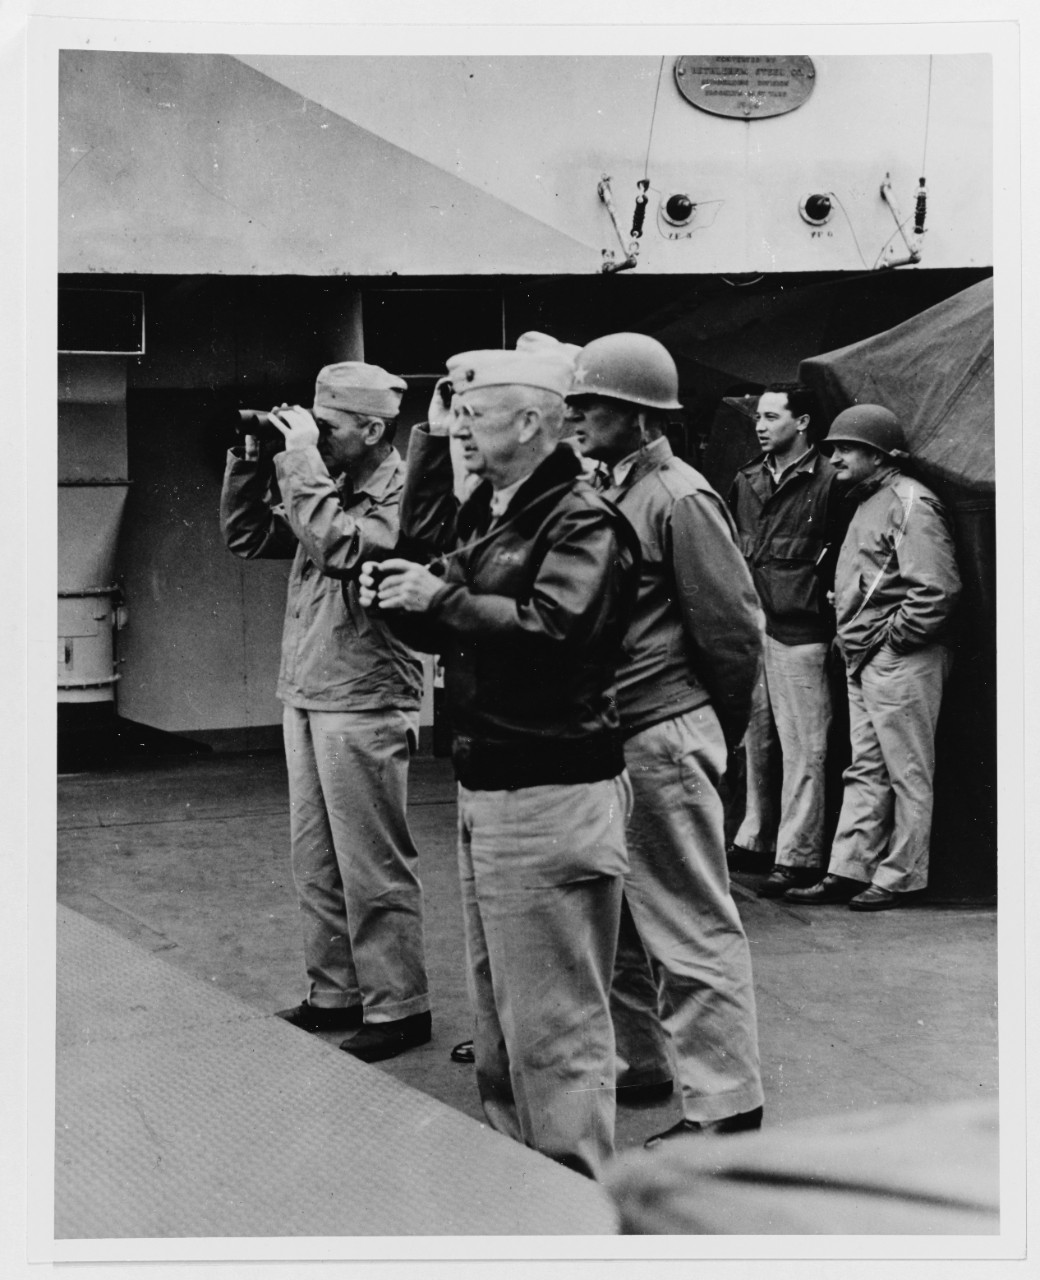 Secretary of the Navy James Forrestal and operation leaders watch invasion activities from on board USS Eldorado (AGC-11), 20 February 1945.